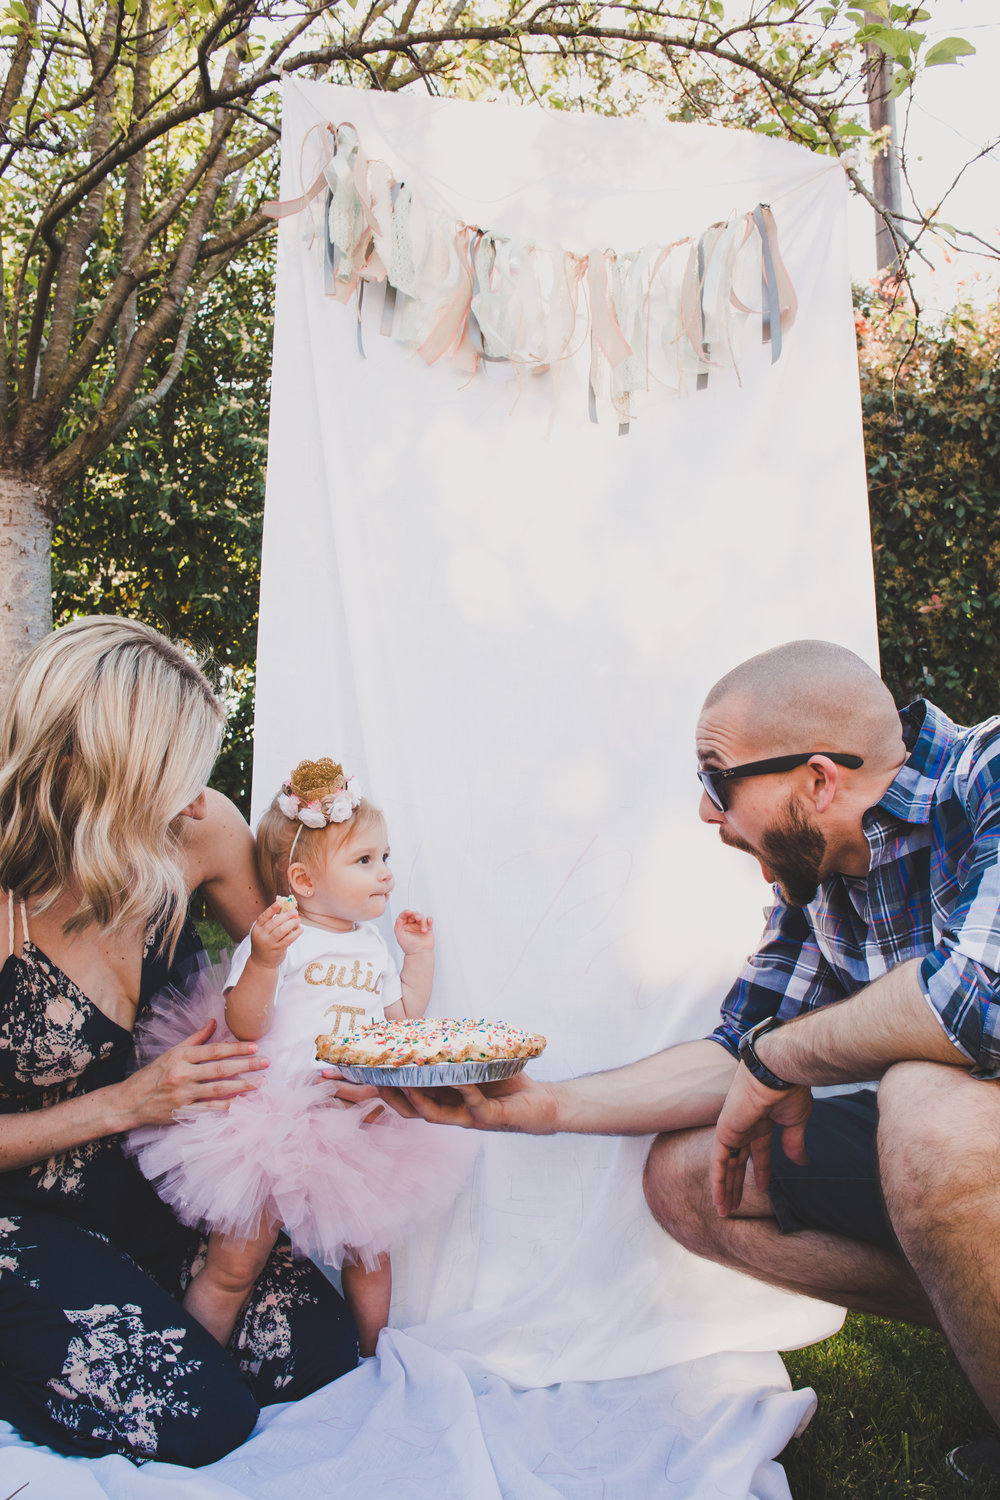 First Birthday Pie Smash - First Birthday Party Ideas - A Vintage Chic Pi Day Themed 1st Birthday Party | Ava's First Birthday